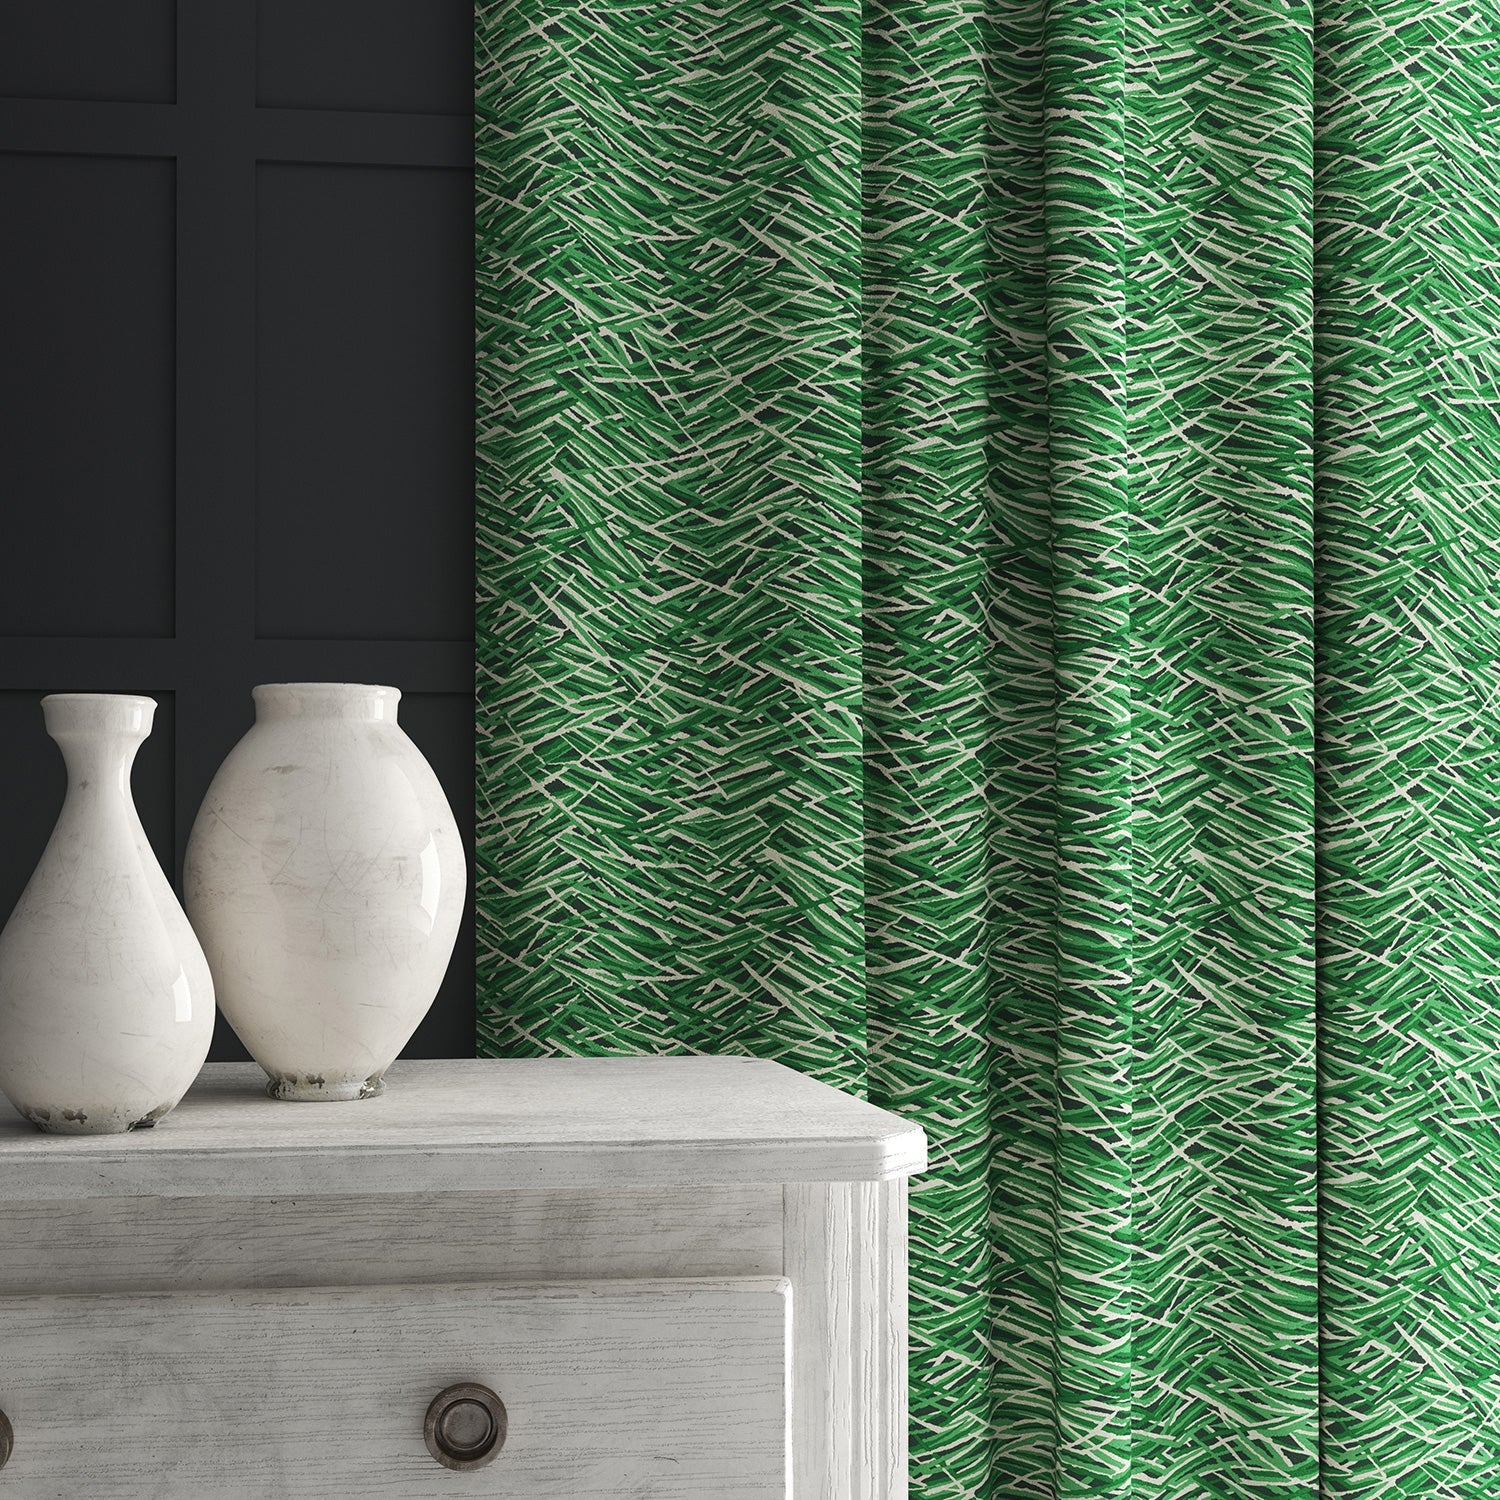 Curtain in a luxury green velvet fabric with abstract design